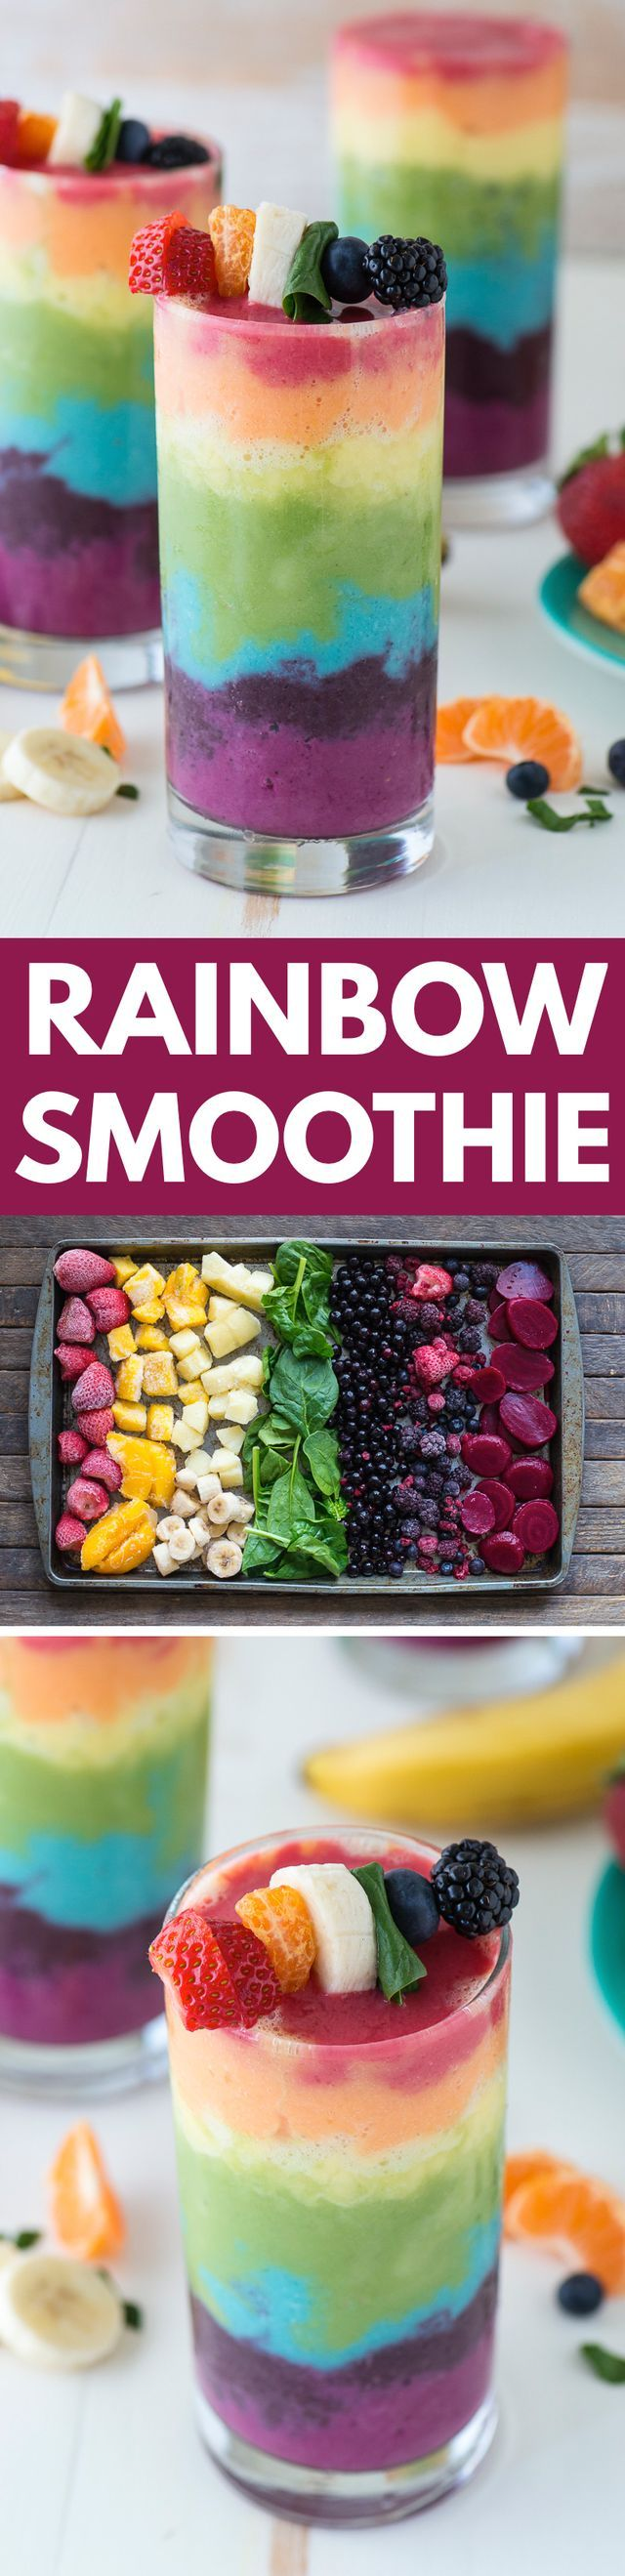 Rainbow Smoothie - Beautiful 7 layer rainbow smoothie recipe! Full of tons of fruit and topped with a fruit skewer, it's the ultimate rainbow smoothie!